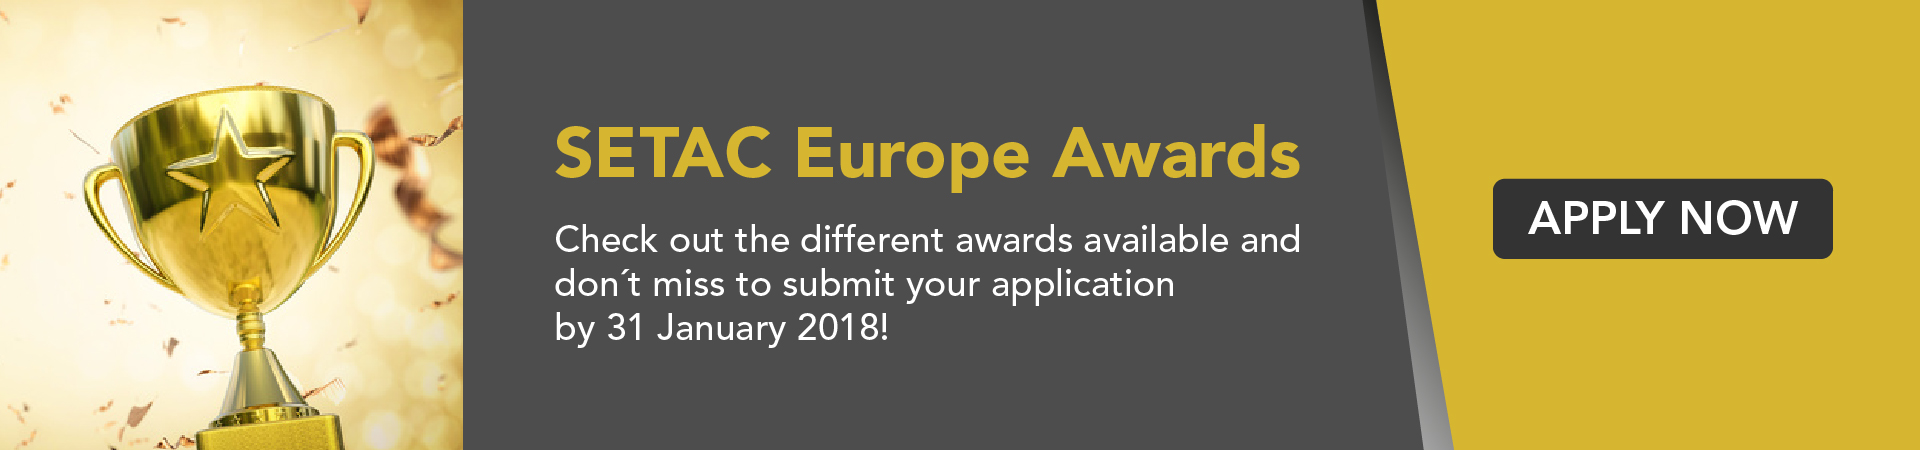 SETAC Europe Awards